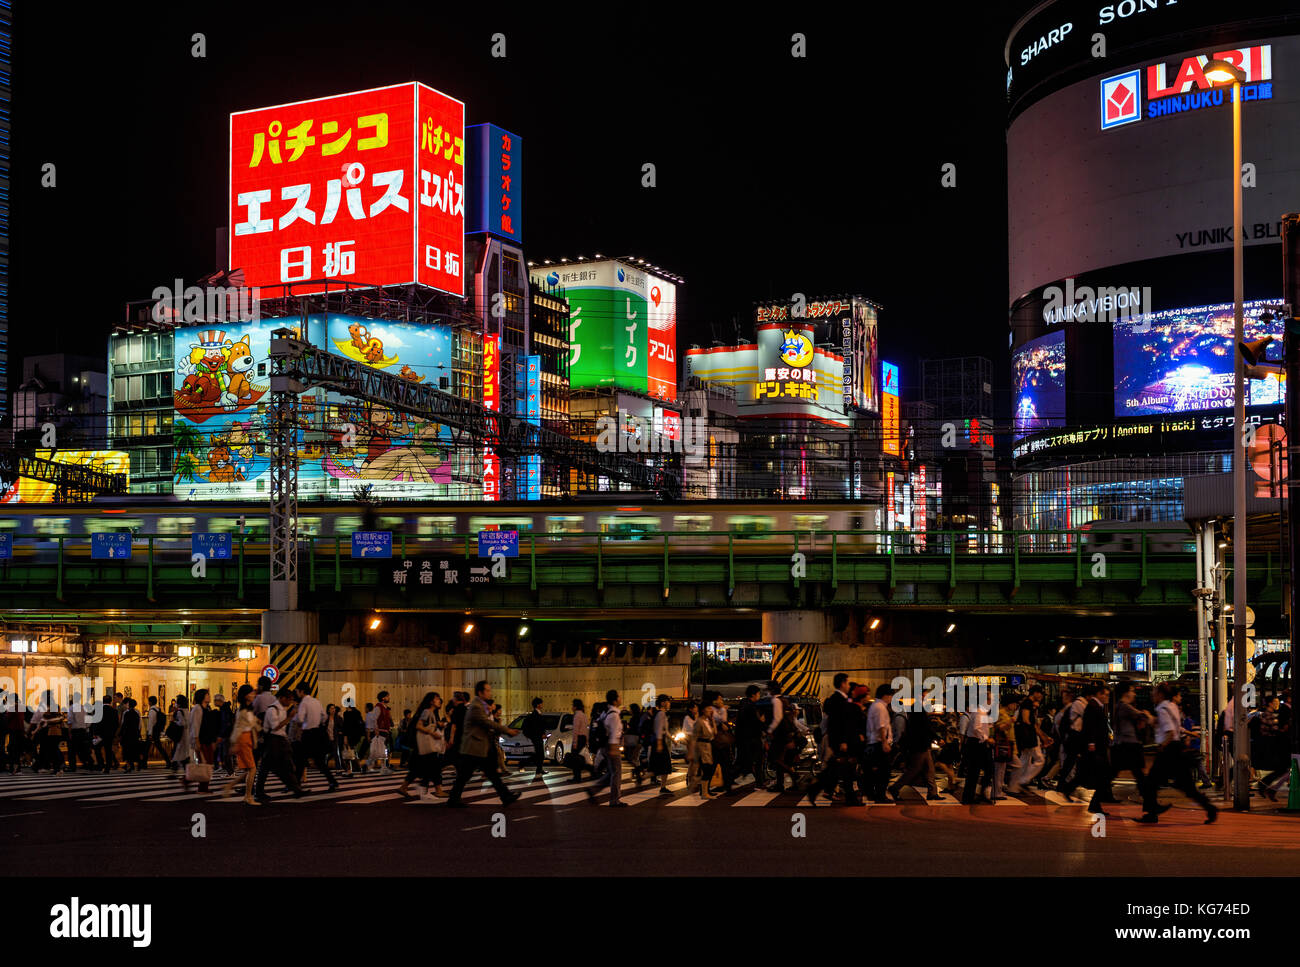 Night life in Tokyo. People cross a very busy crossroad below Shinjuku district lights - Stock Image